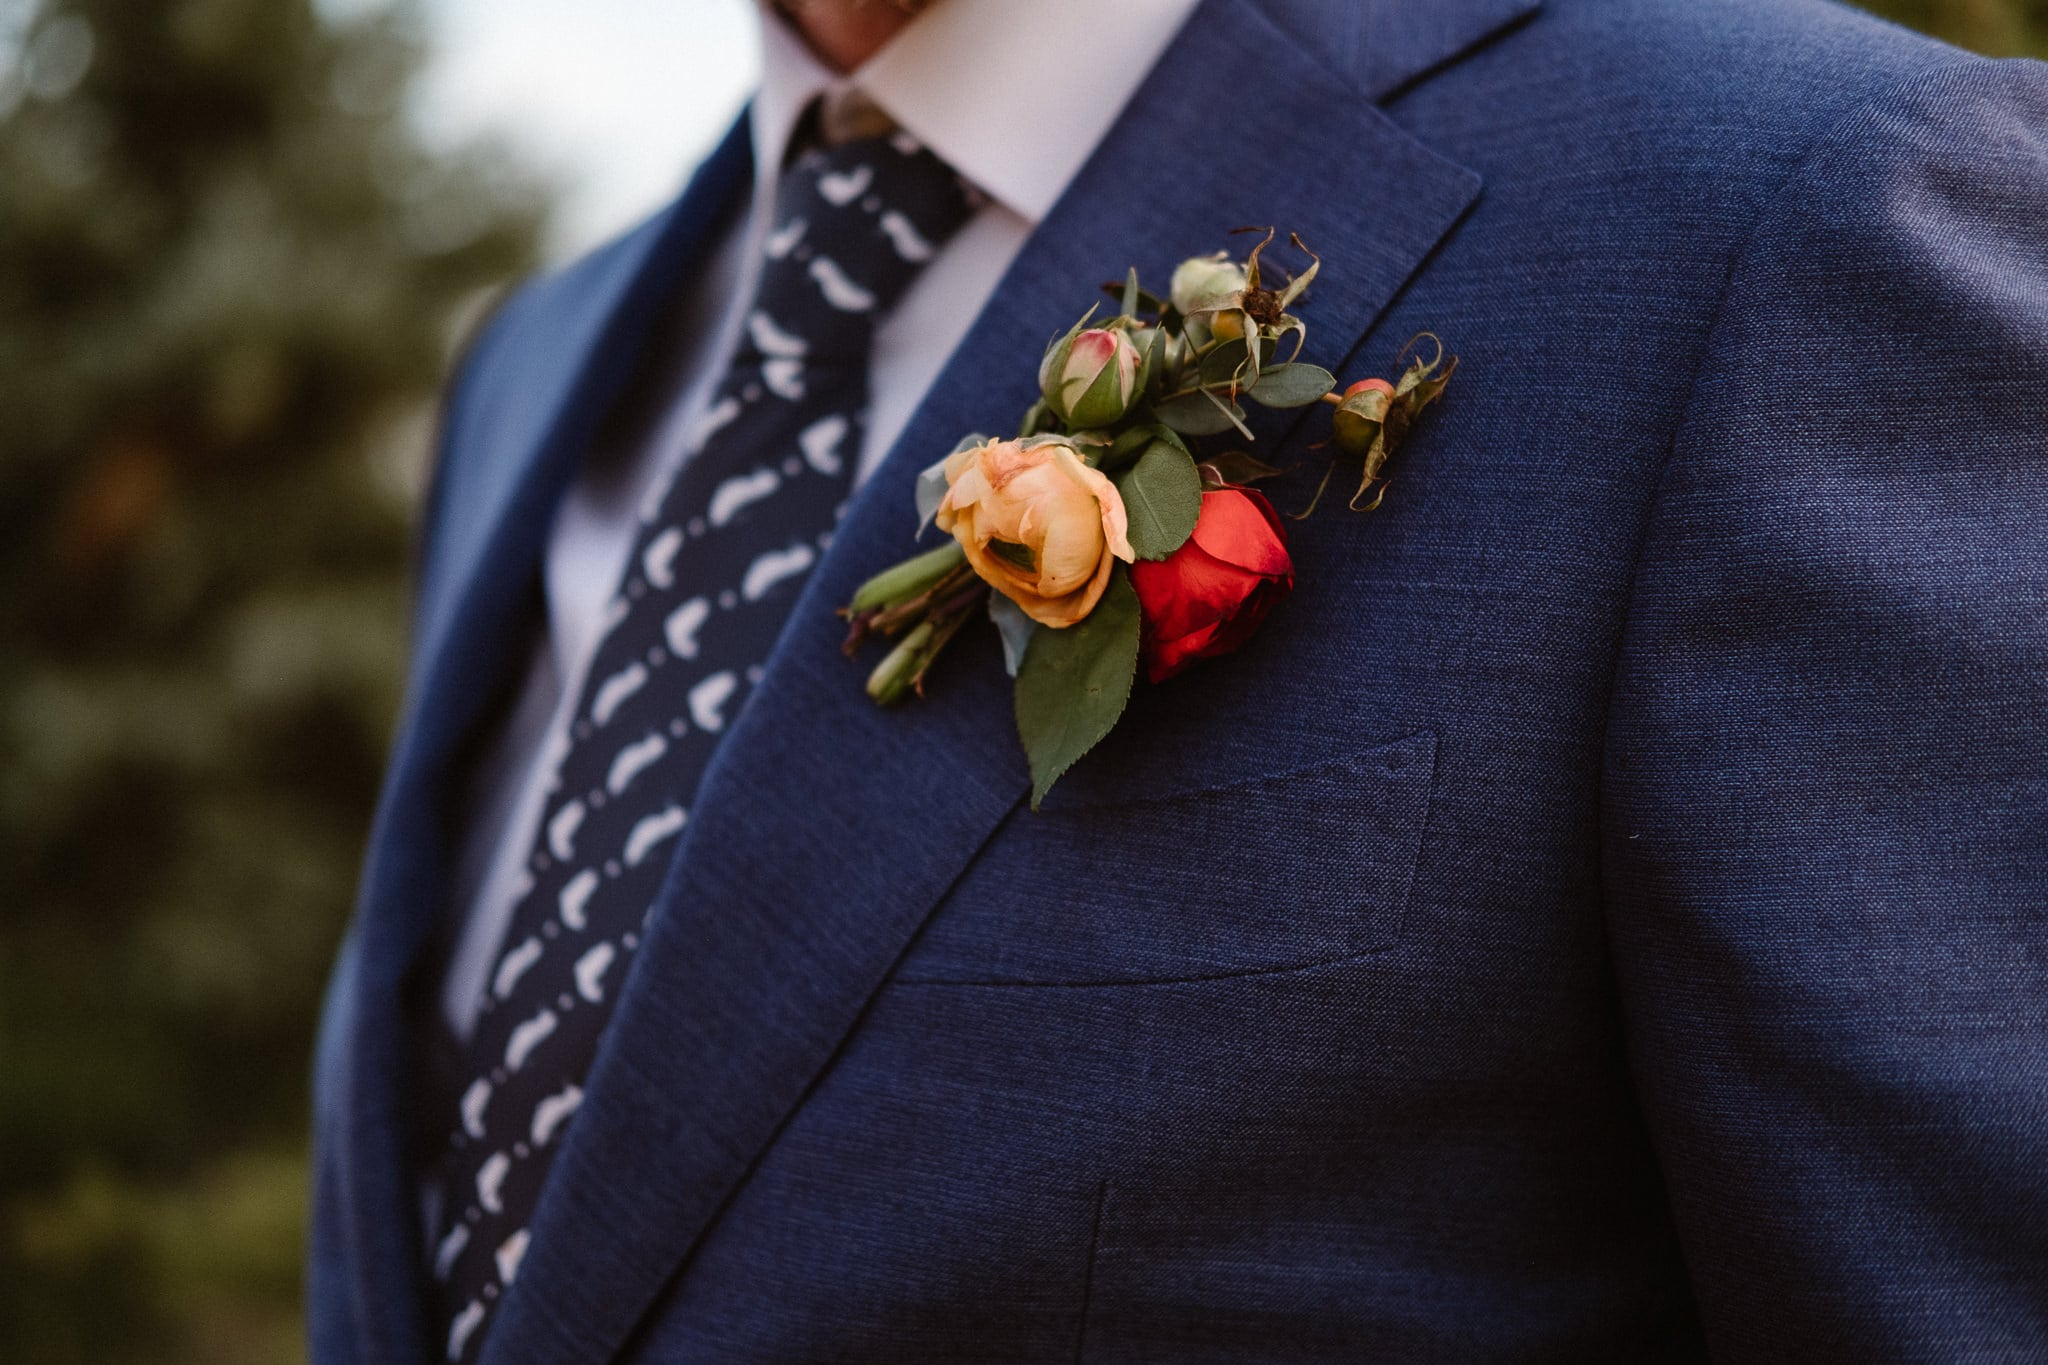 Steamboat Springs wedding photographer, La Joya Dulce wedding, Colorado ranch wedding venues, groom portrait, groom in dark blue dress, groom with fish tie, boutonniere with yellow and red flower